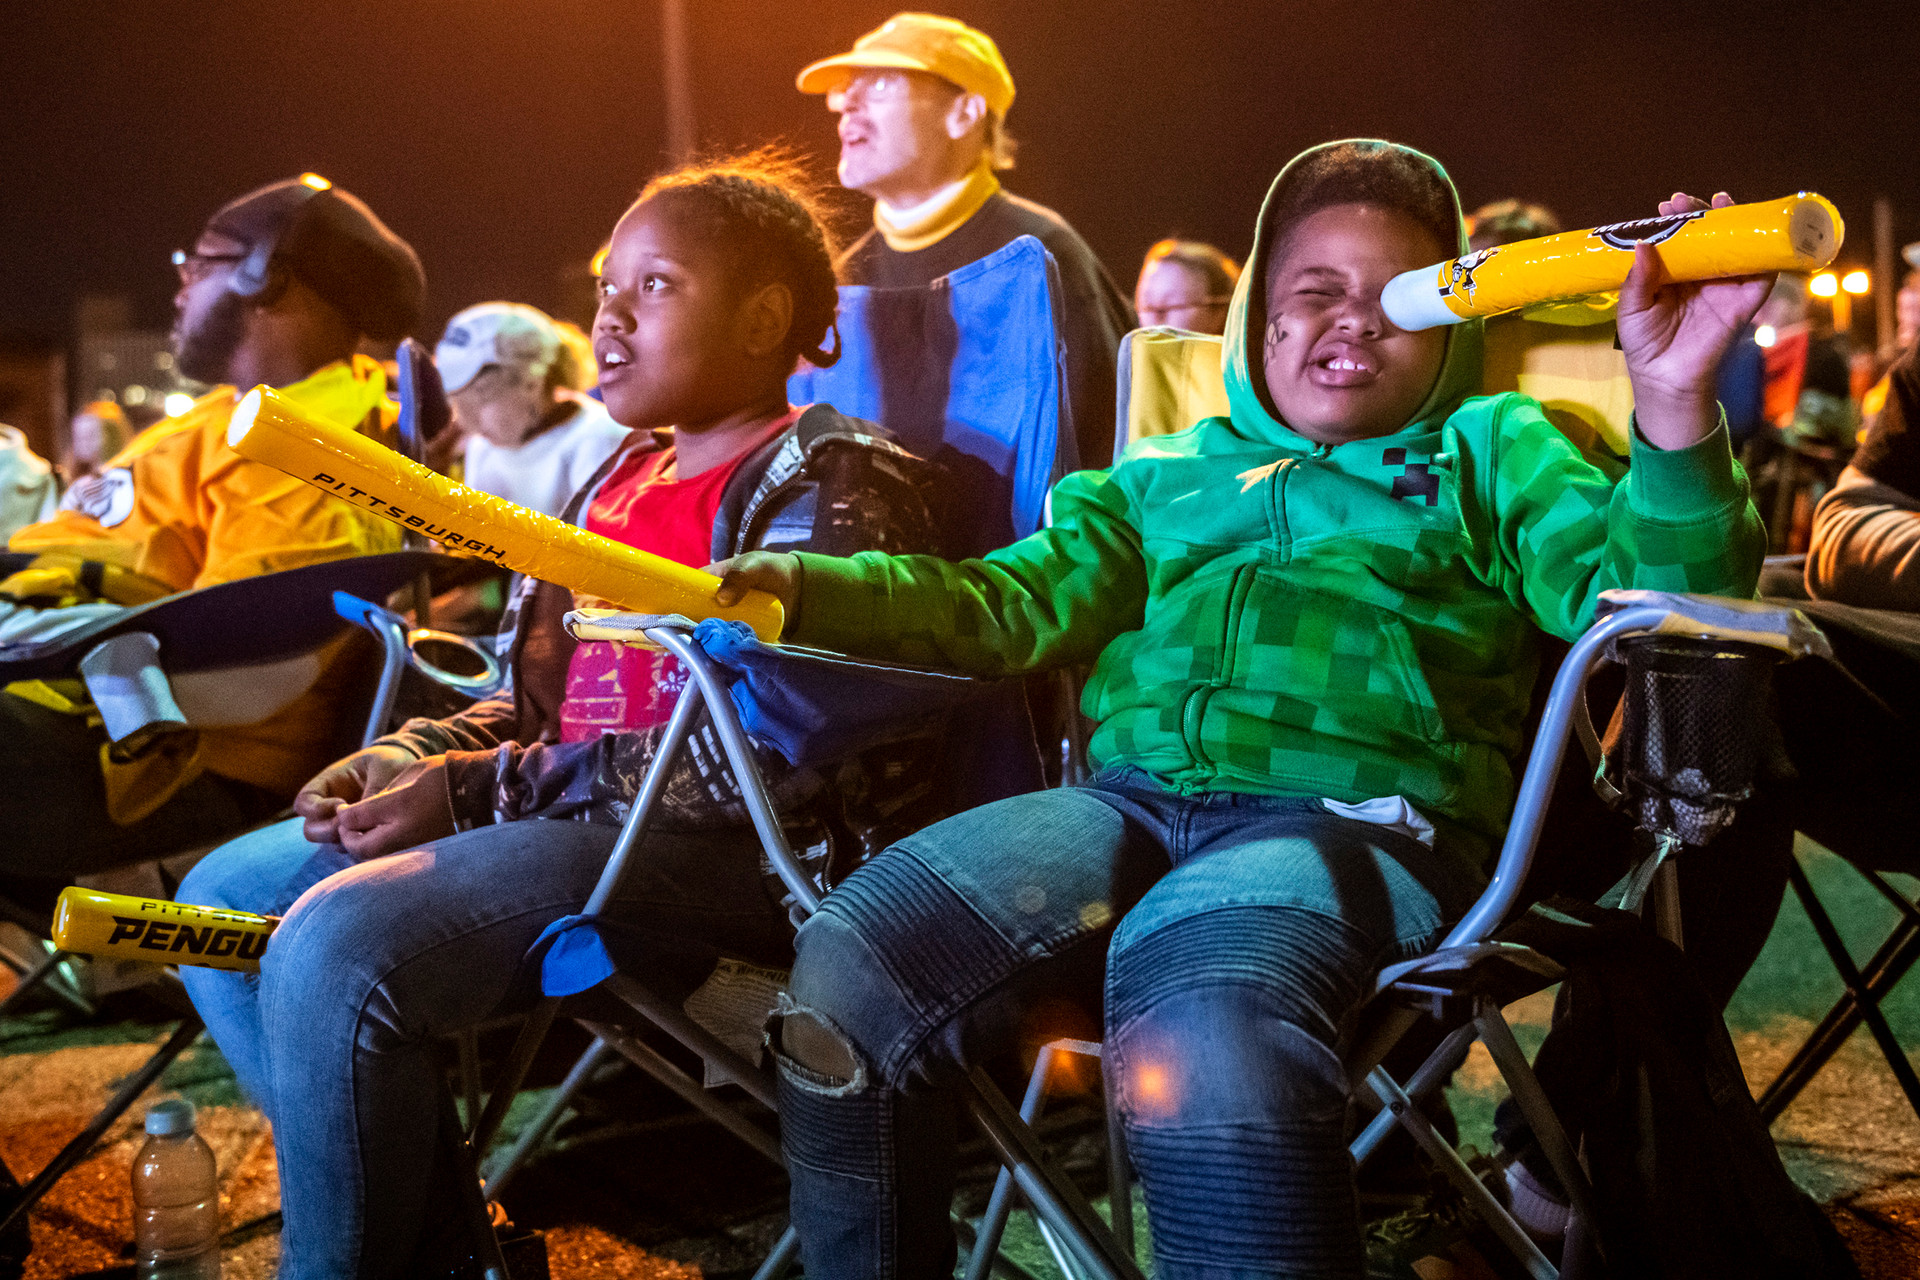 Tyler Norman of the Hill district, left, watches the first-round playoff series between the Pittsburgh Penguins and New York Islanders on the big screen as his brother Tyrone Norman of the Hill, right, looks through a Penguins souvenir given to fans, Tuesday, April 16, 2019, at the PPG Paints Arena parking lot in Uptown.